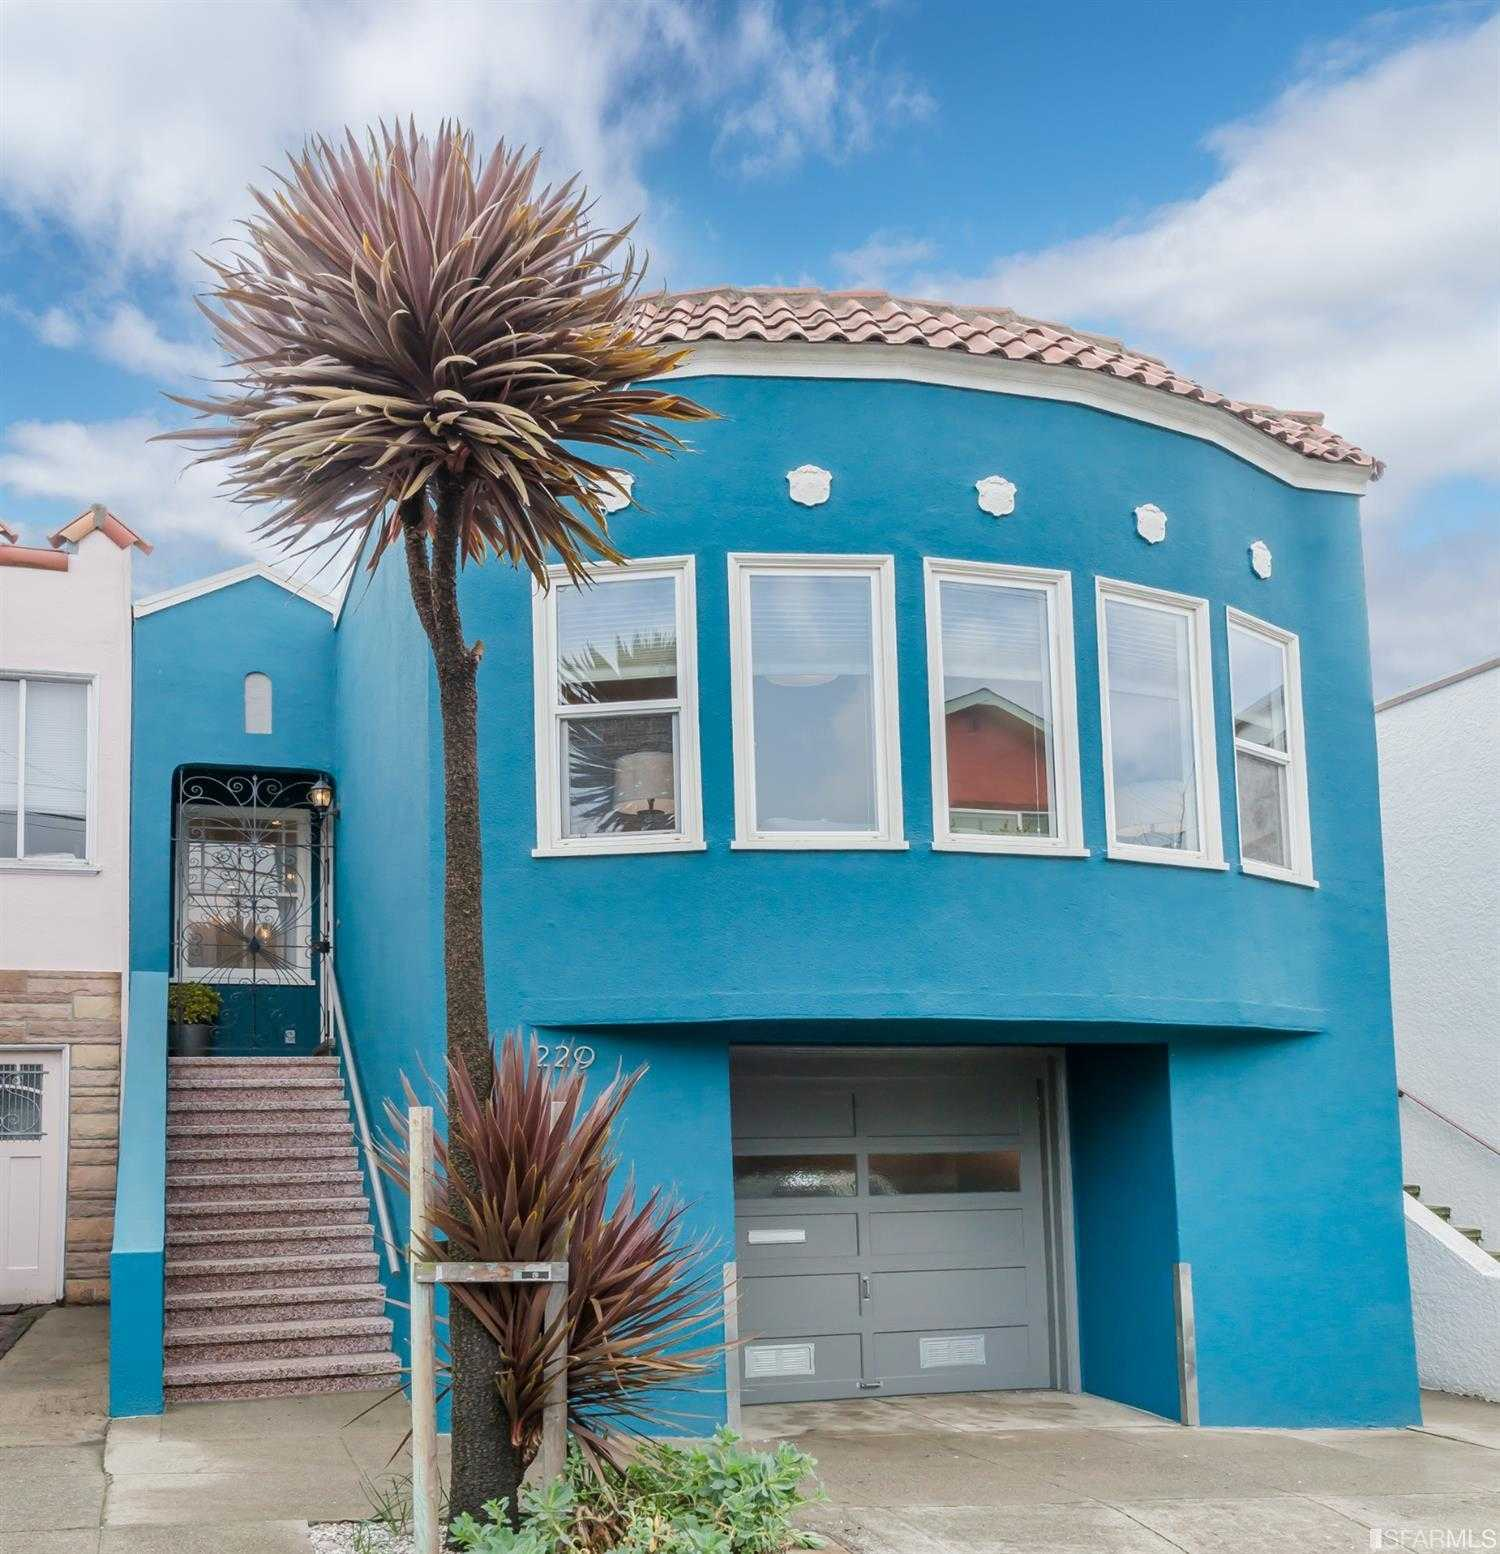 229 Bonview St San Francisco, CA 94110